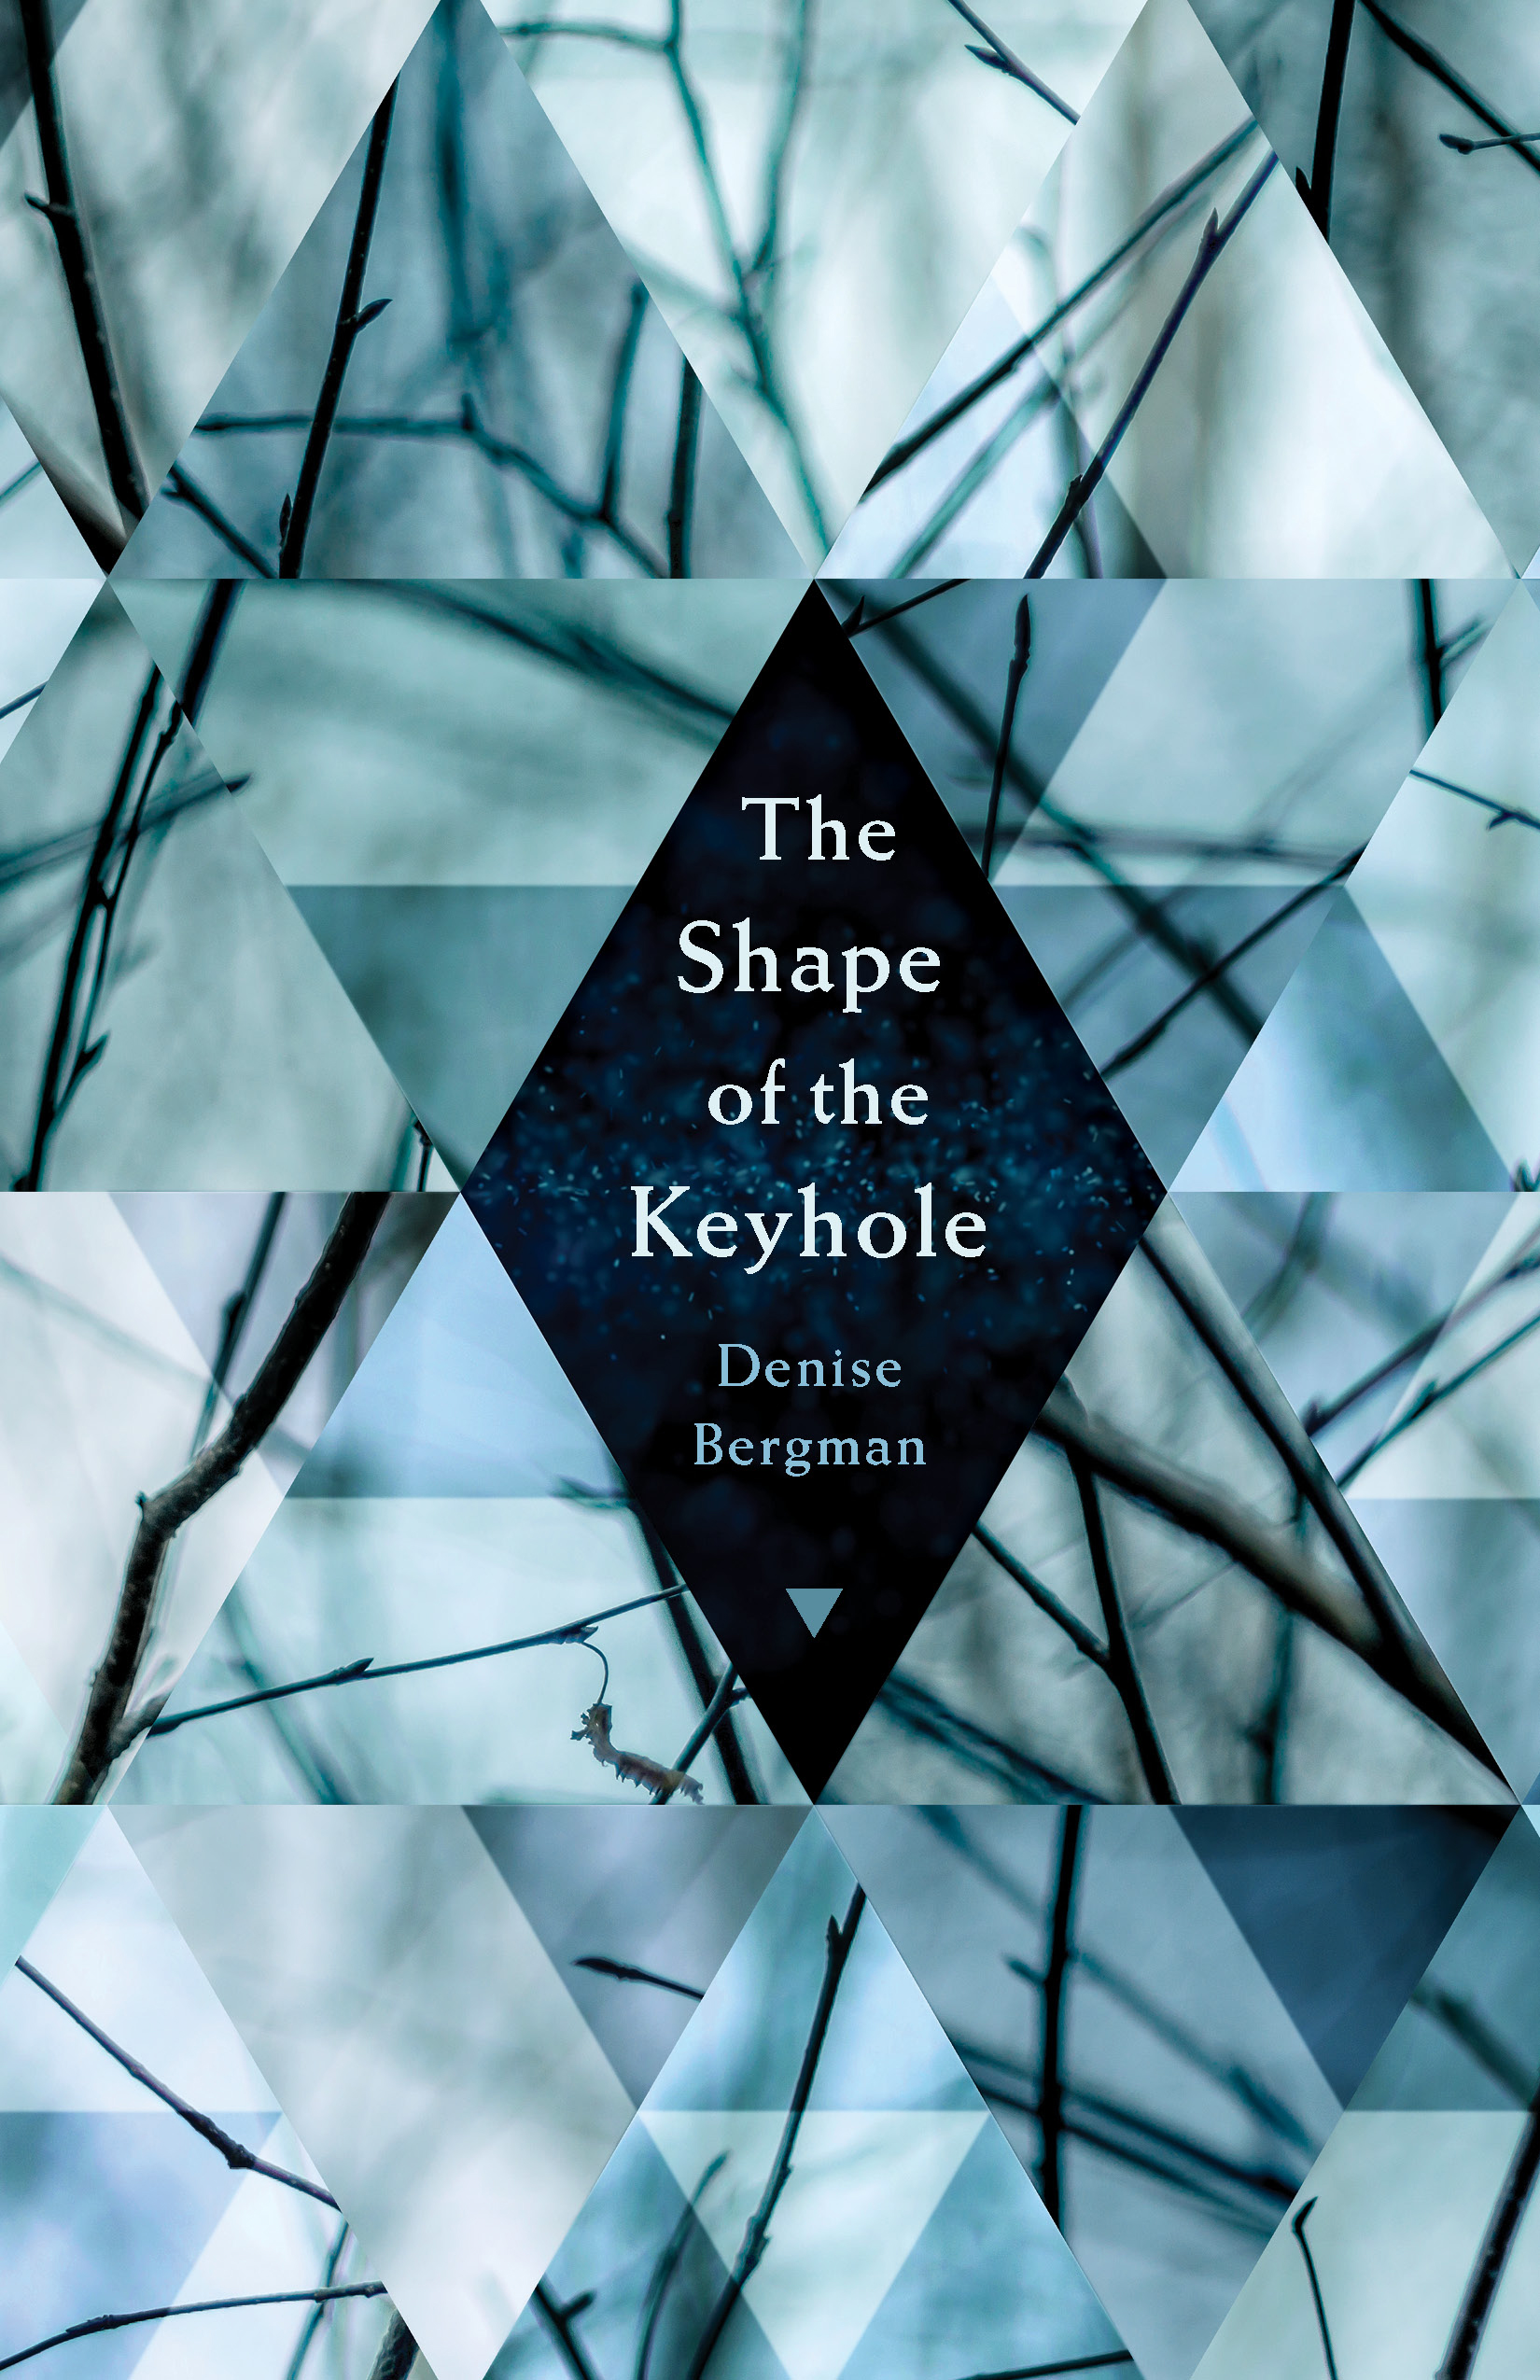 The Shape of the Keyhole